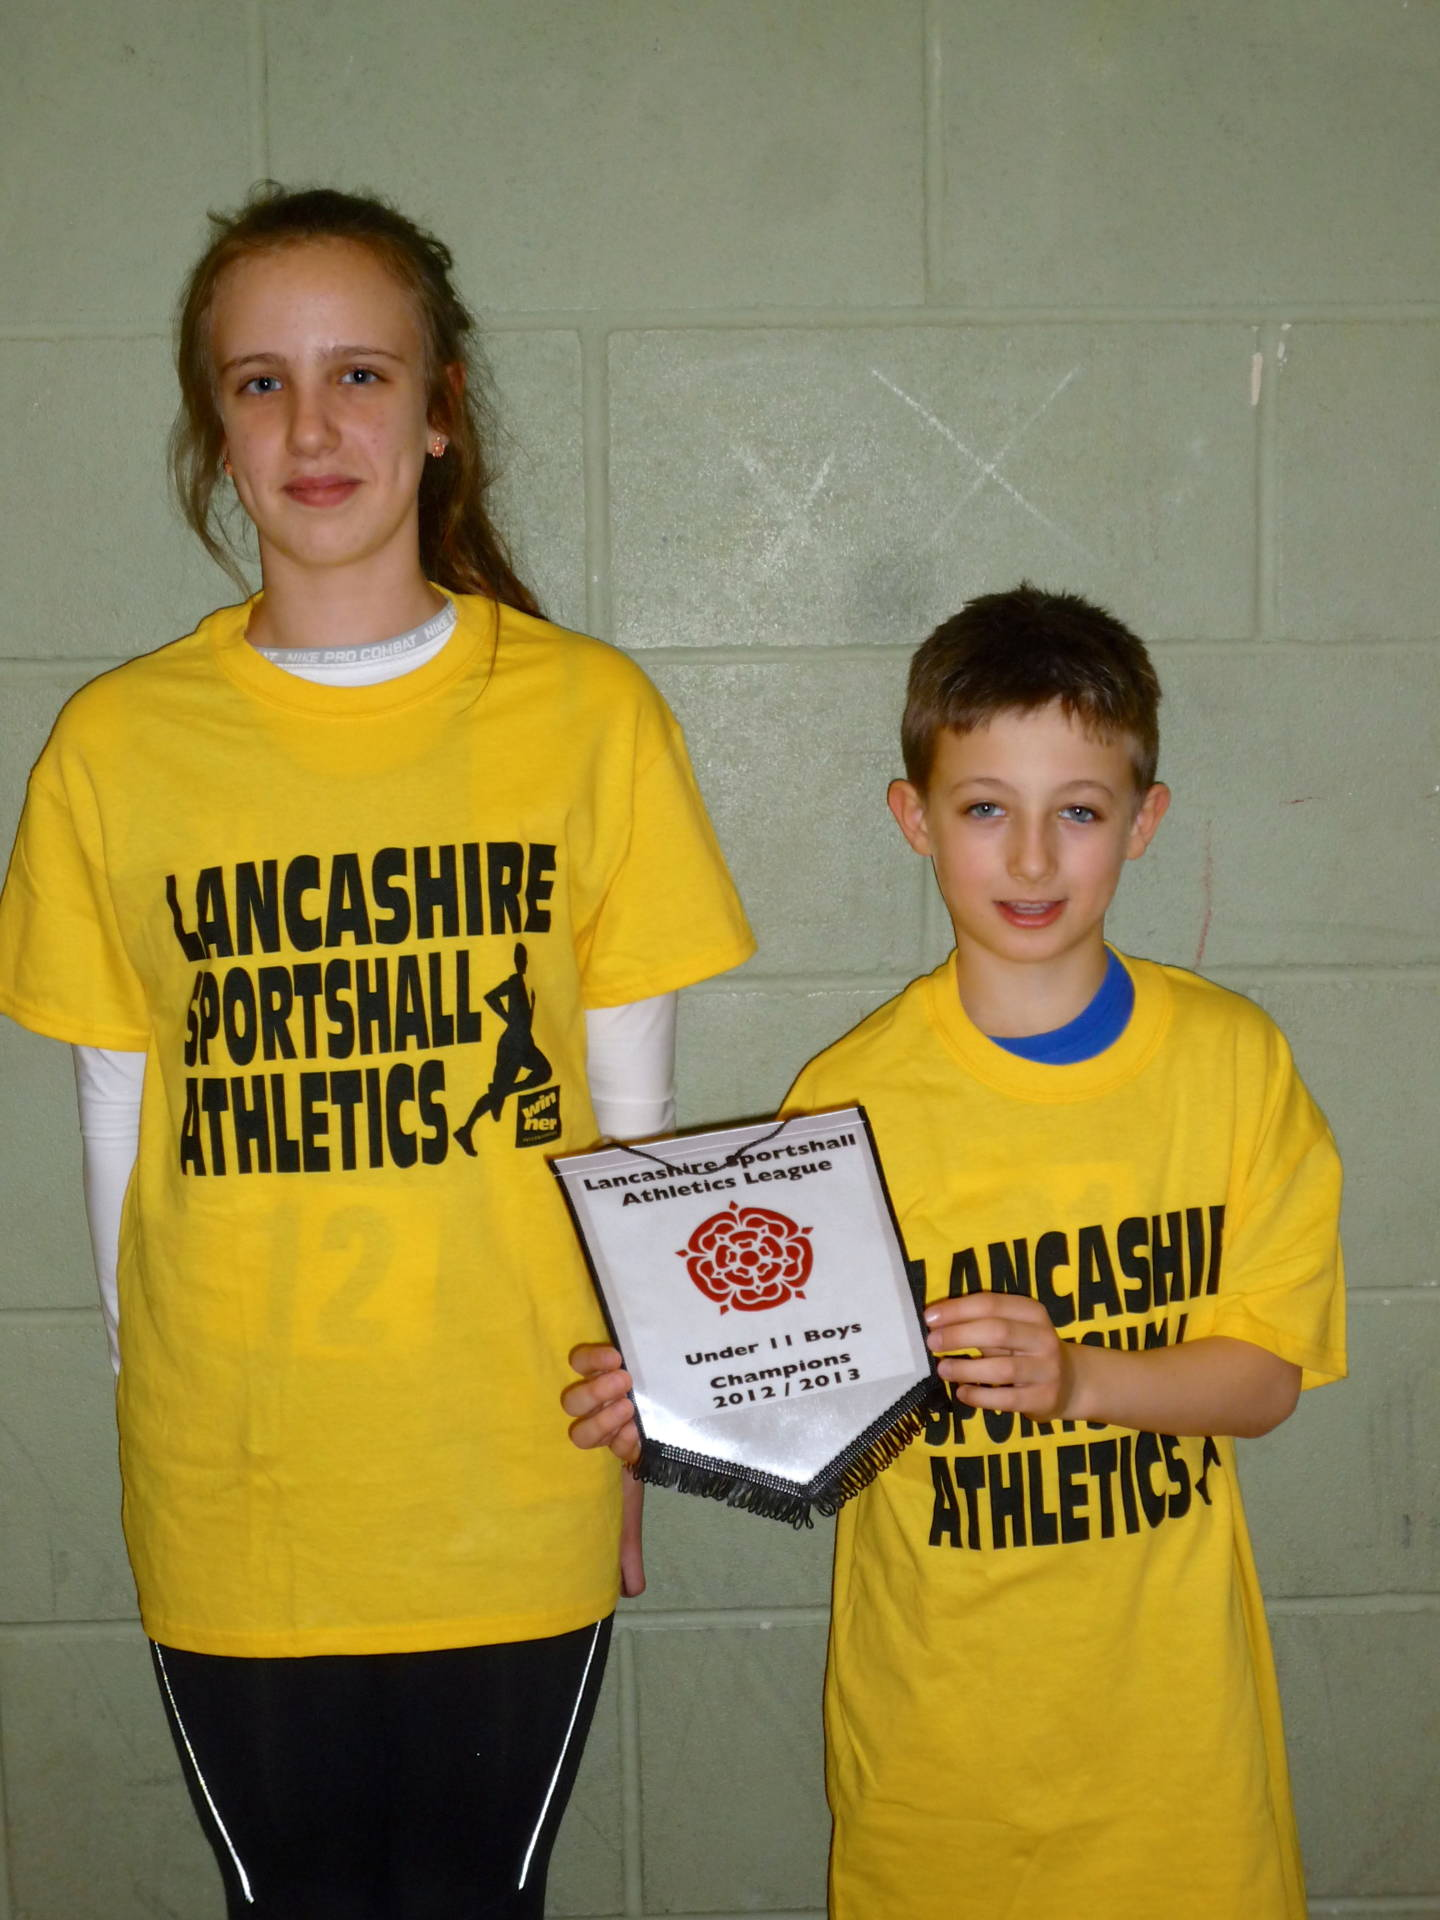 Sportshall U11 Athlete of Match Feb 2013 Charlotte Williams & Soloman Brown